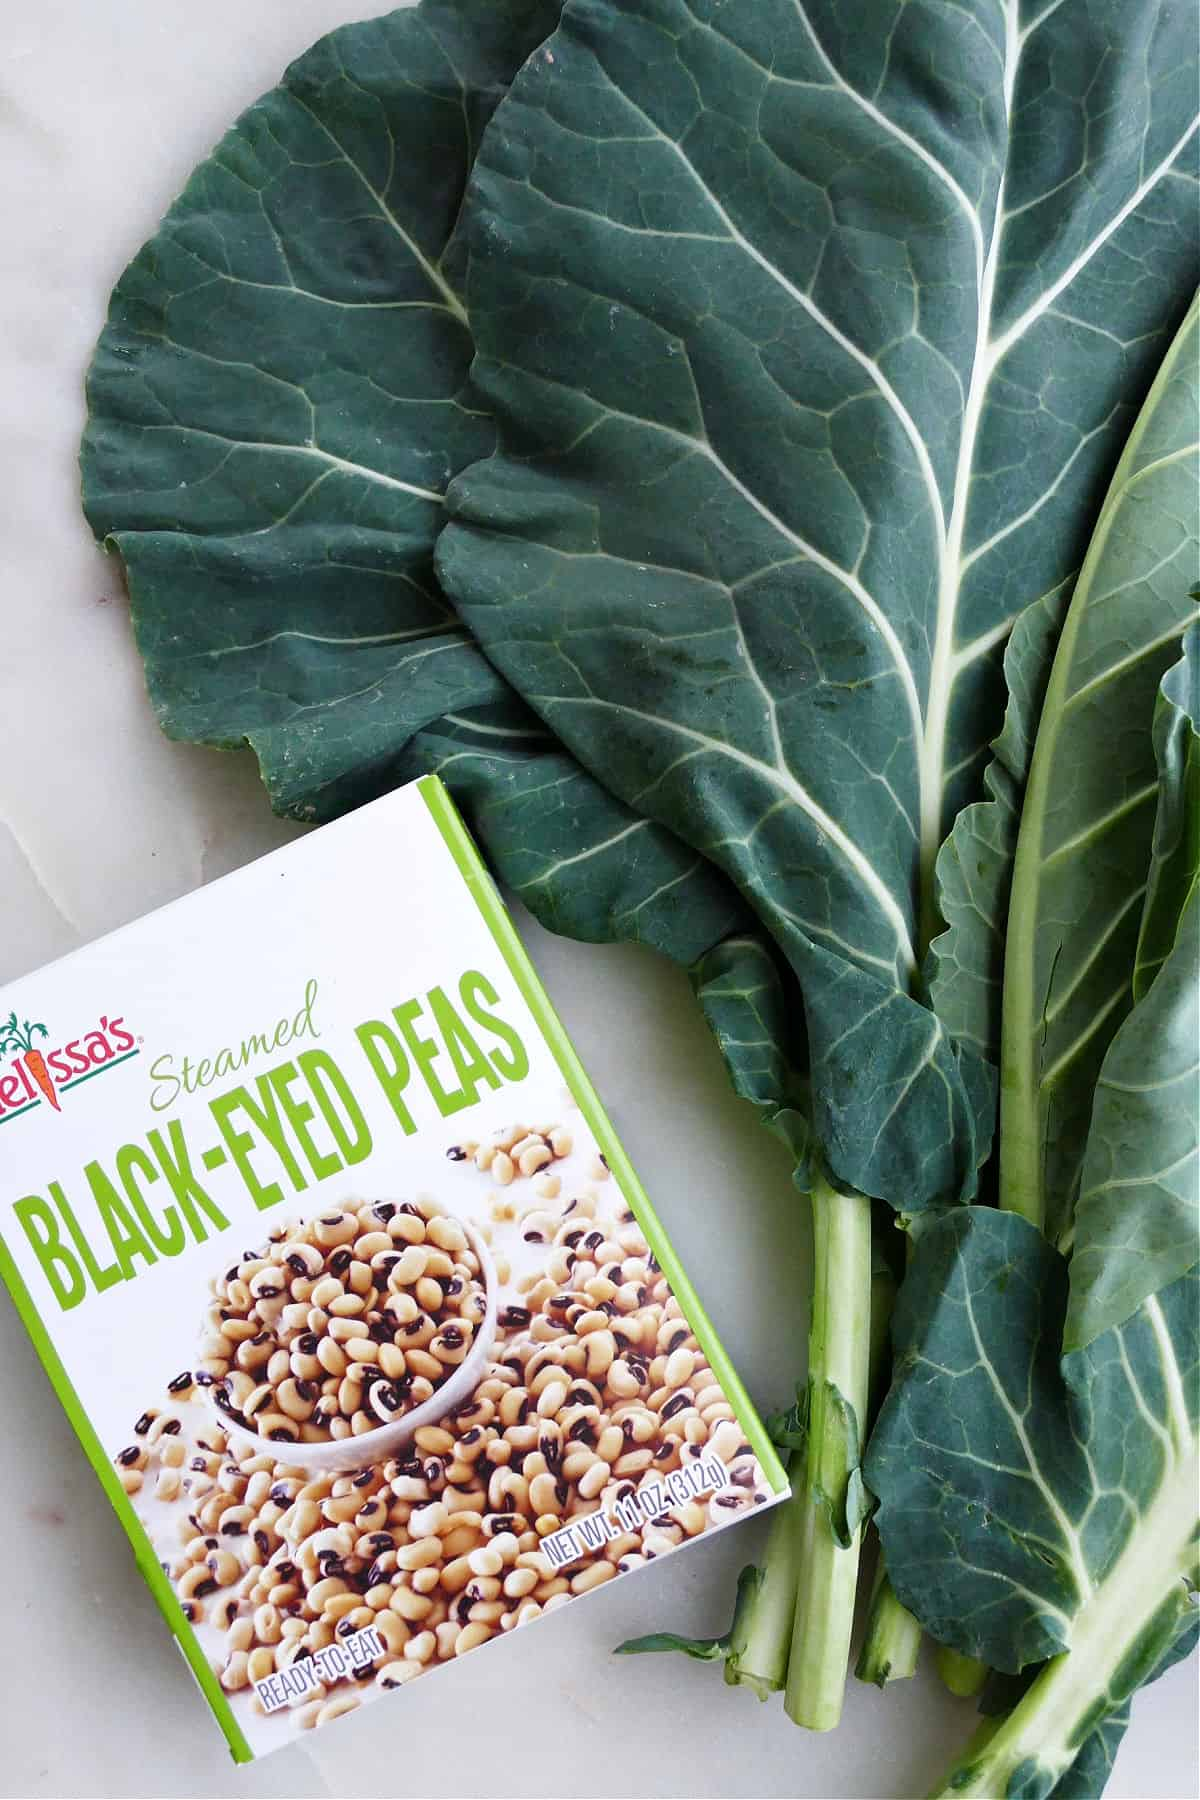 a box of steamed black eyed peas next to a bunch of collard greens on a counter